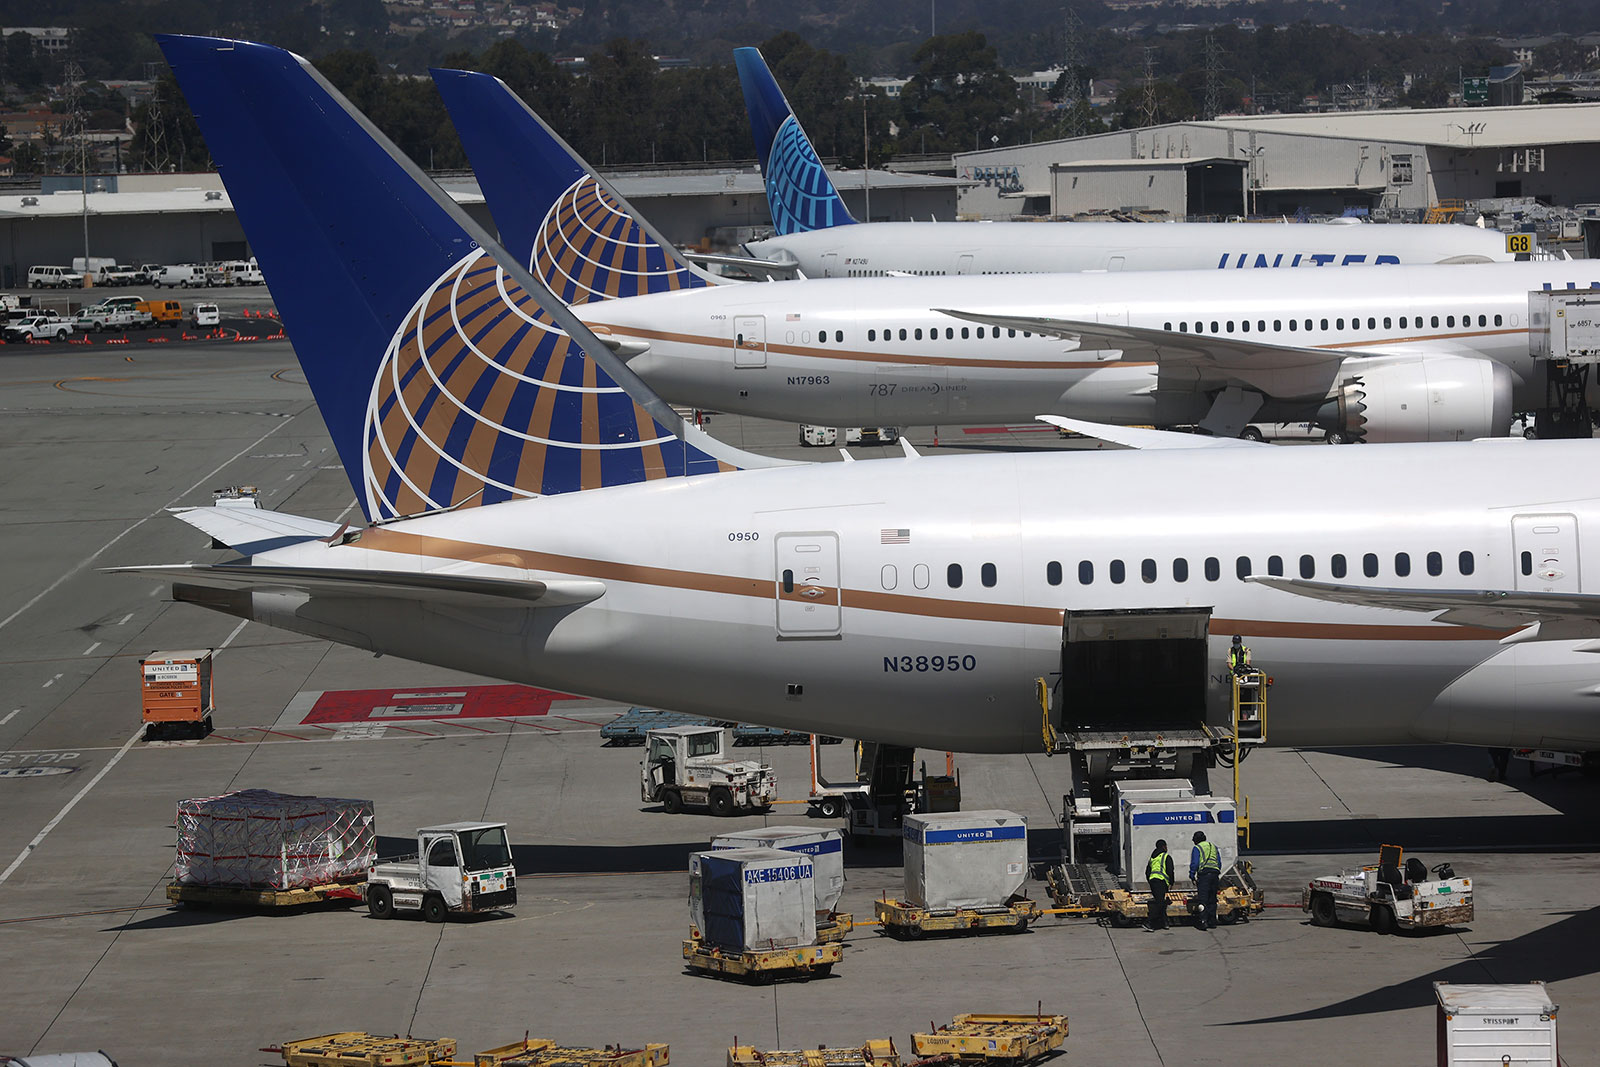 Workers load cargo onto a United Airlines plane at San Francisco International Airport on July 8.